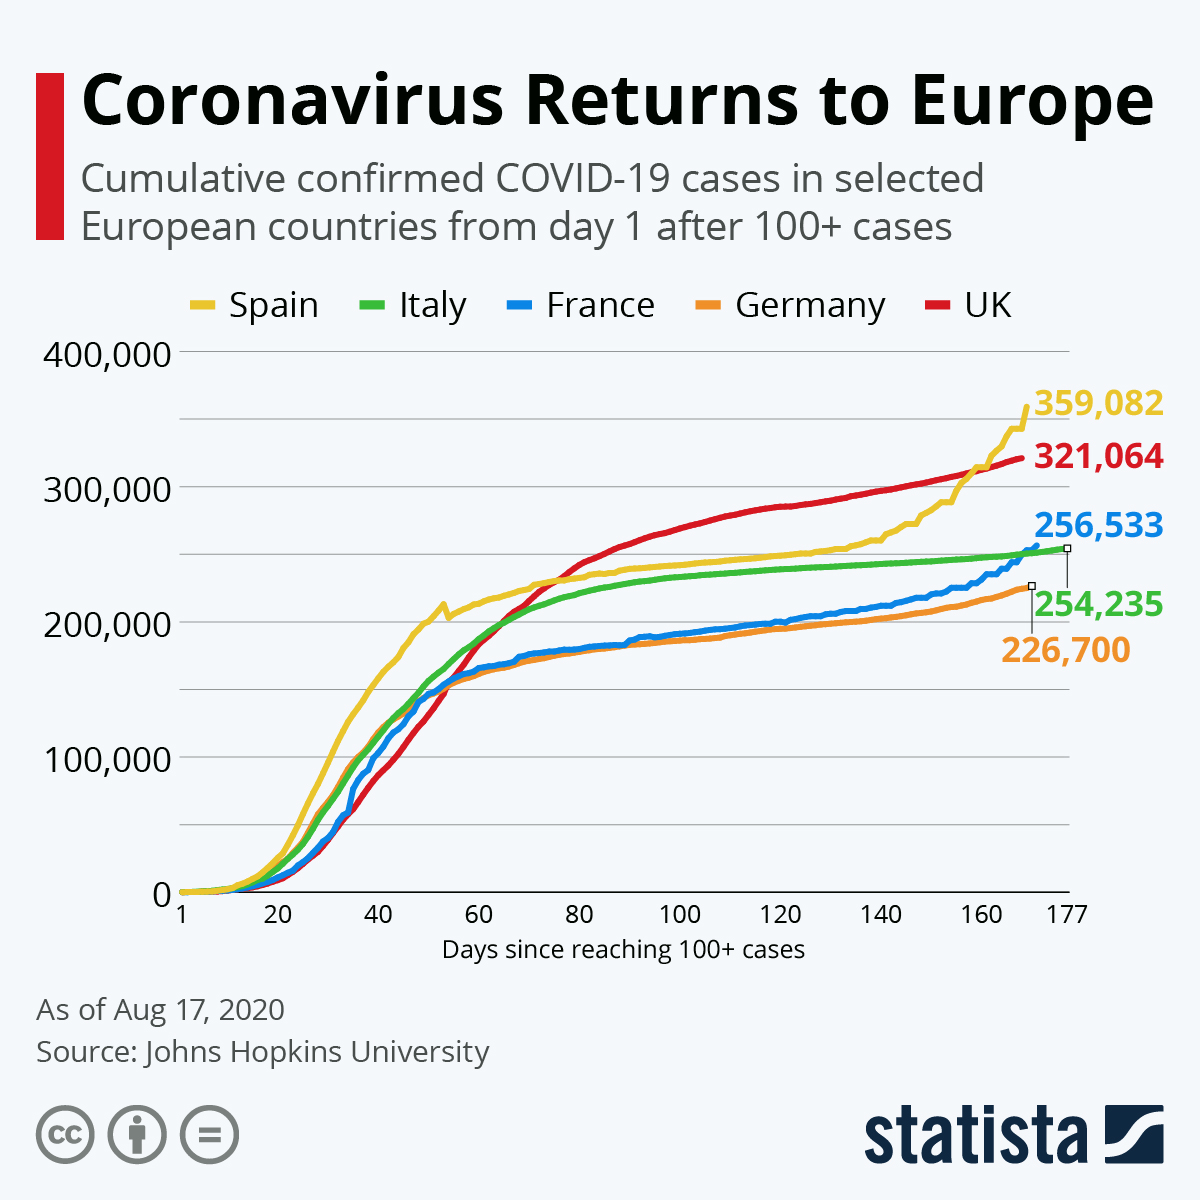 Coronavirus Returns to Europe #infographic